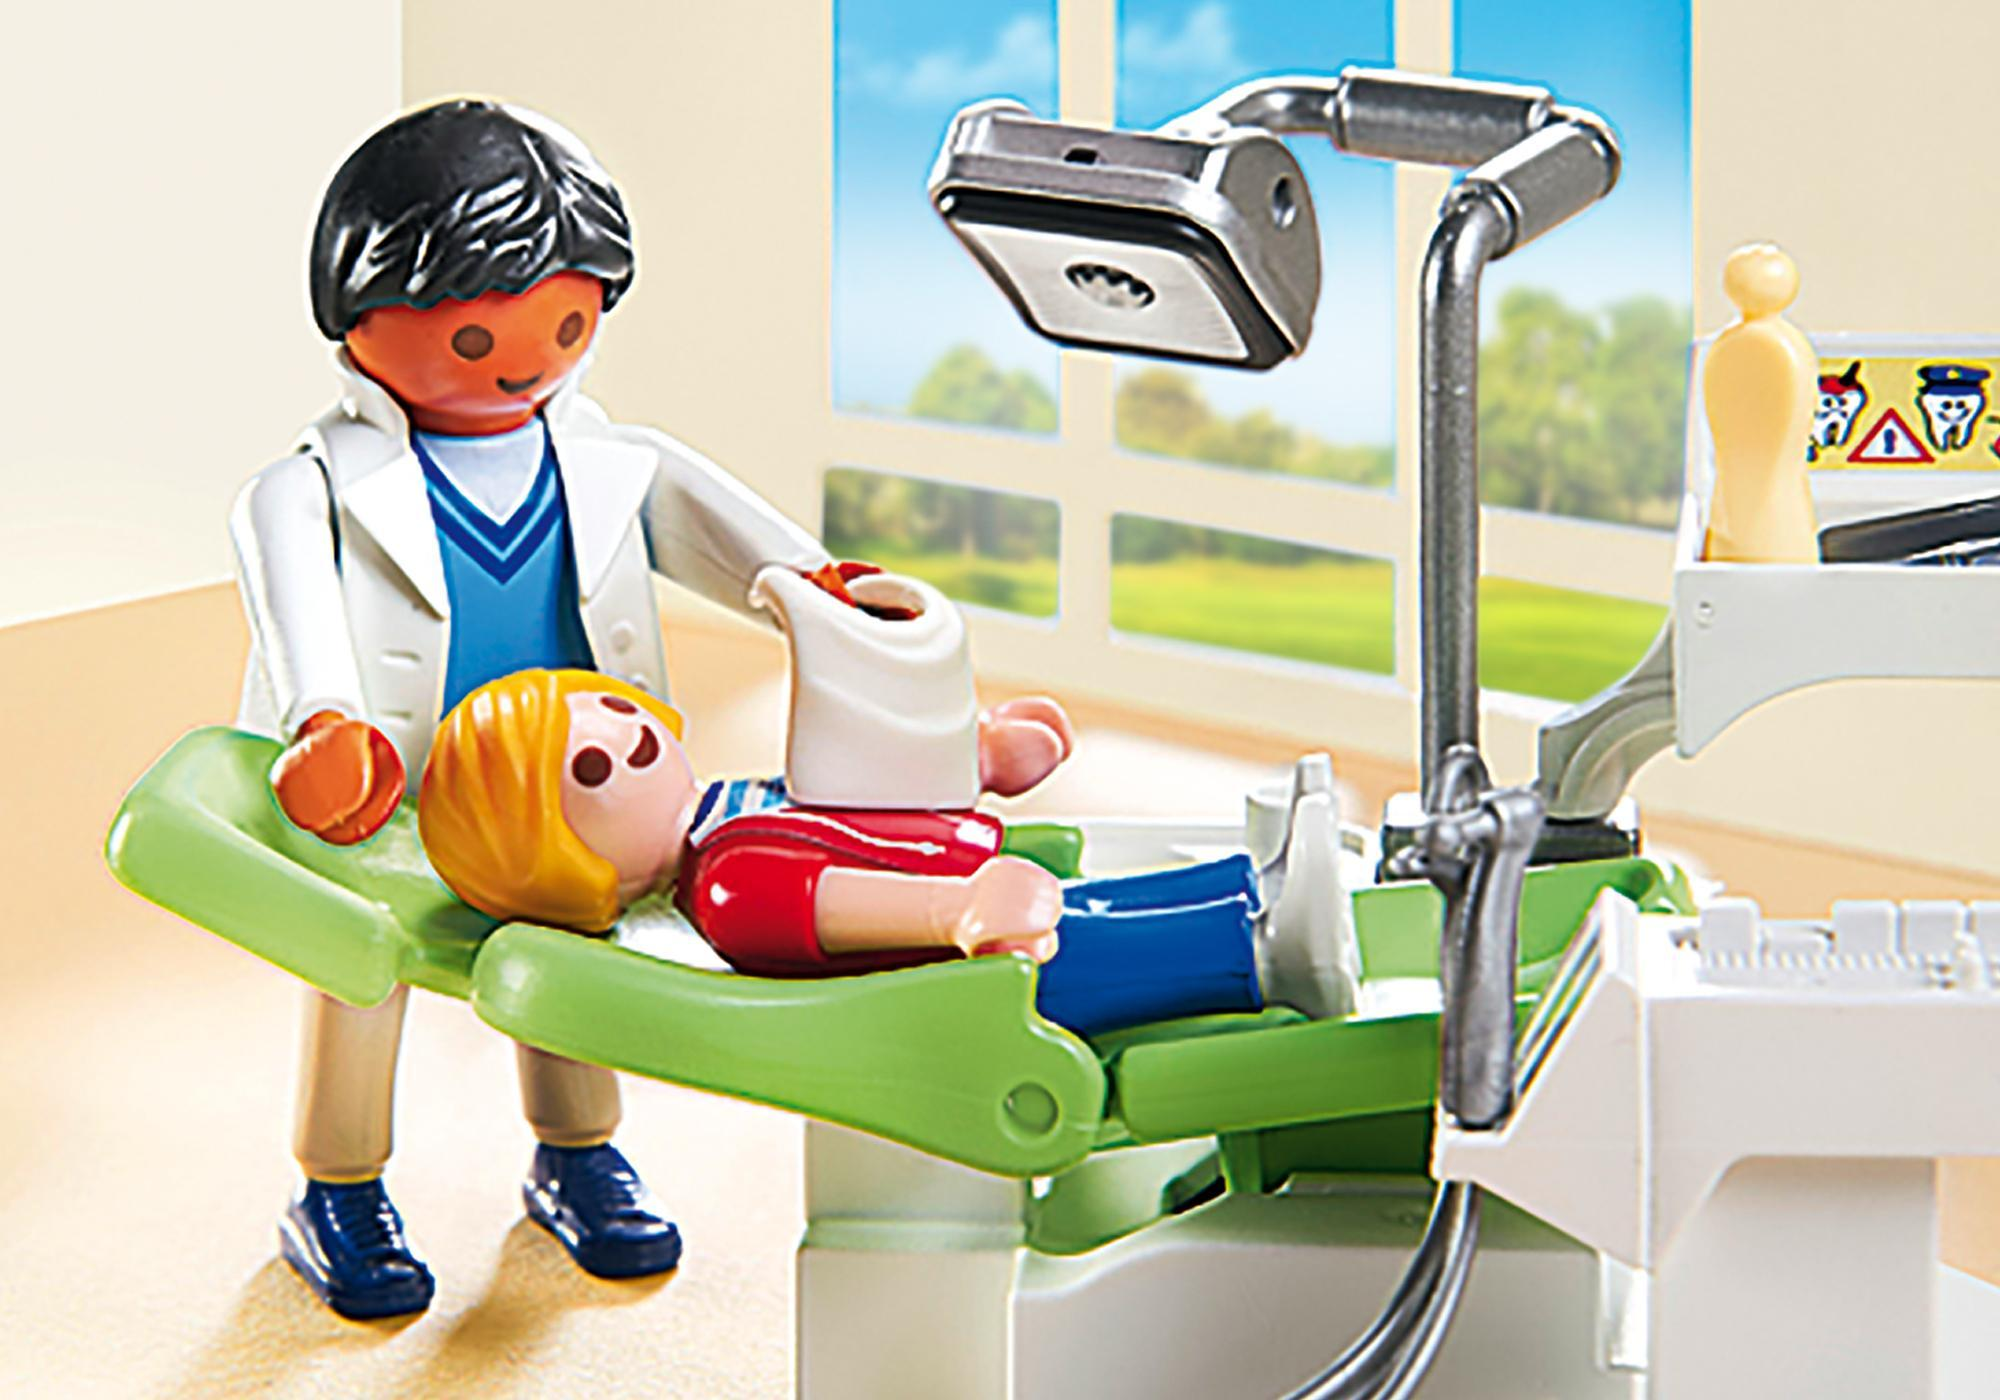 http://media.playmobil.com/i/playmobil/6662_product_extra1/Dentist with Patient